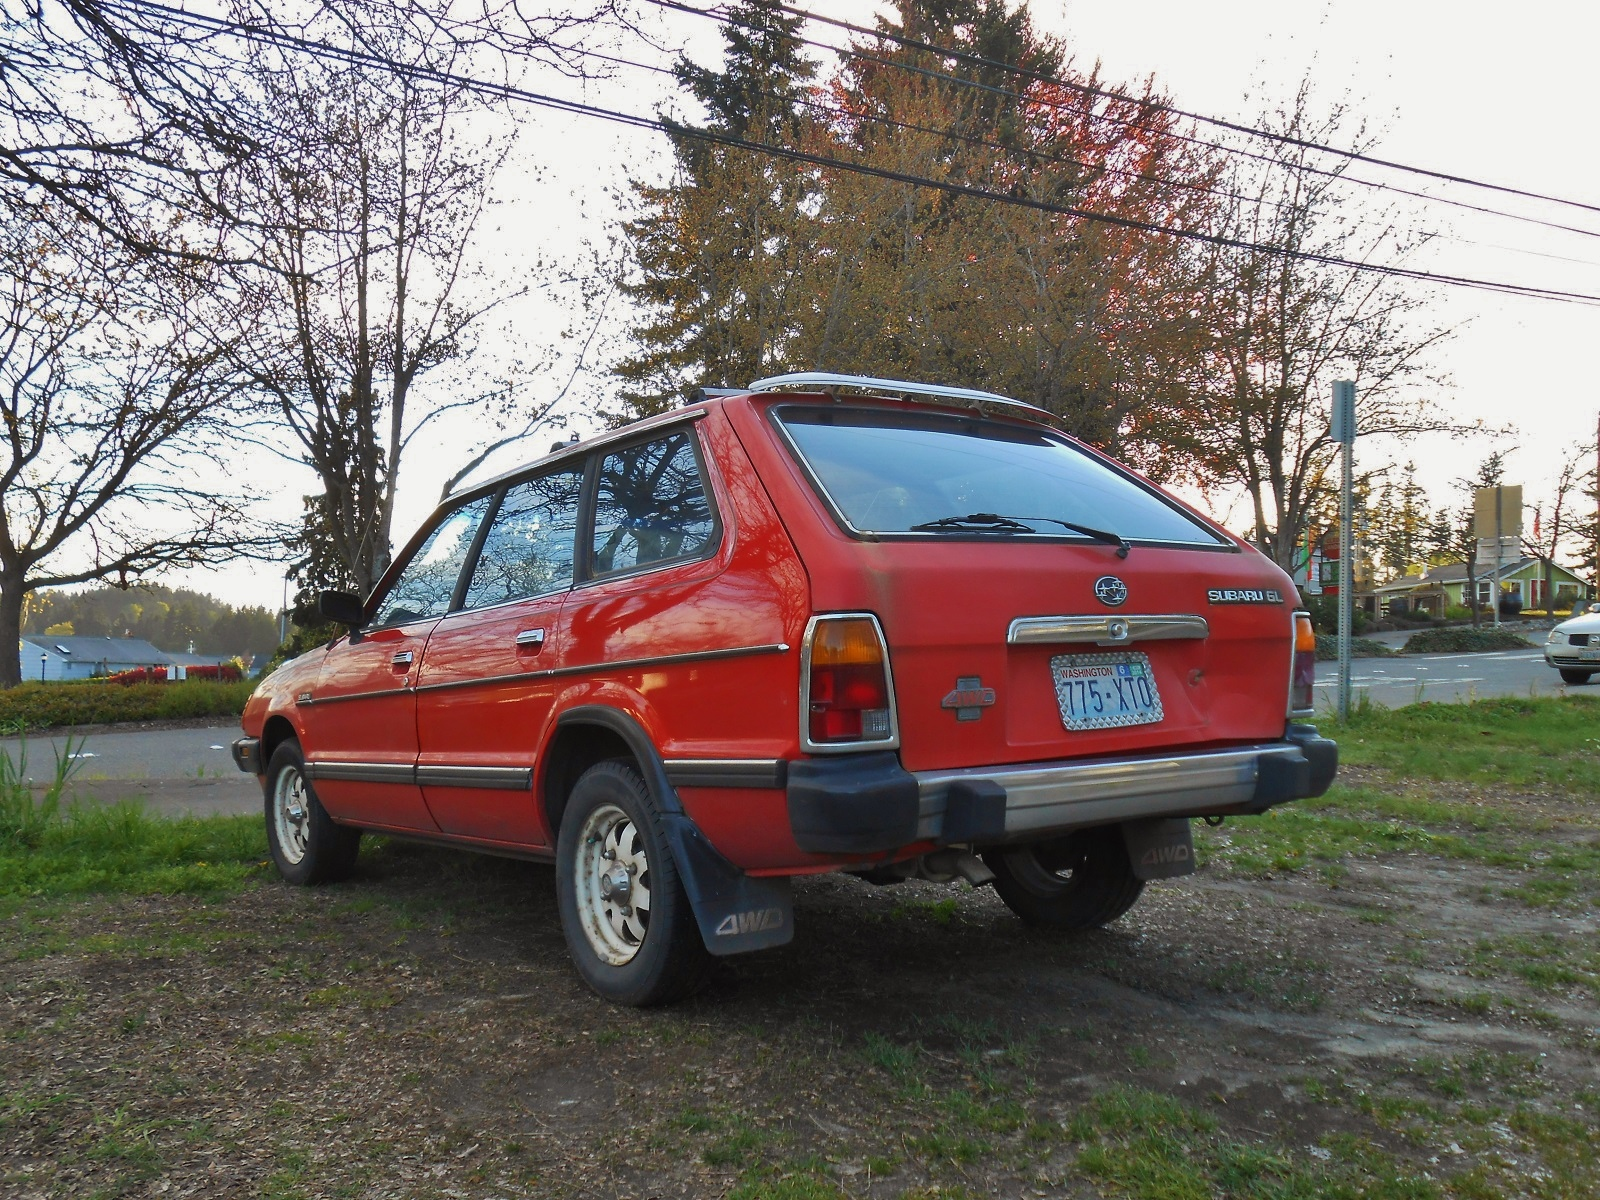 Used Cars Seattle >> Seattle's Parked Cars: 1982 Subaru GL Wagon